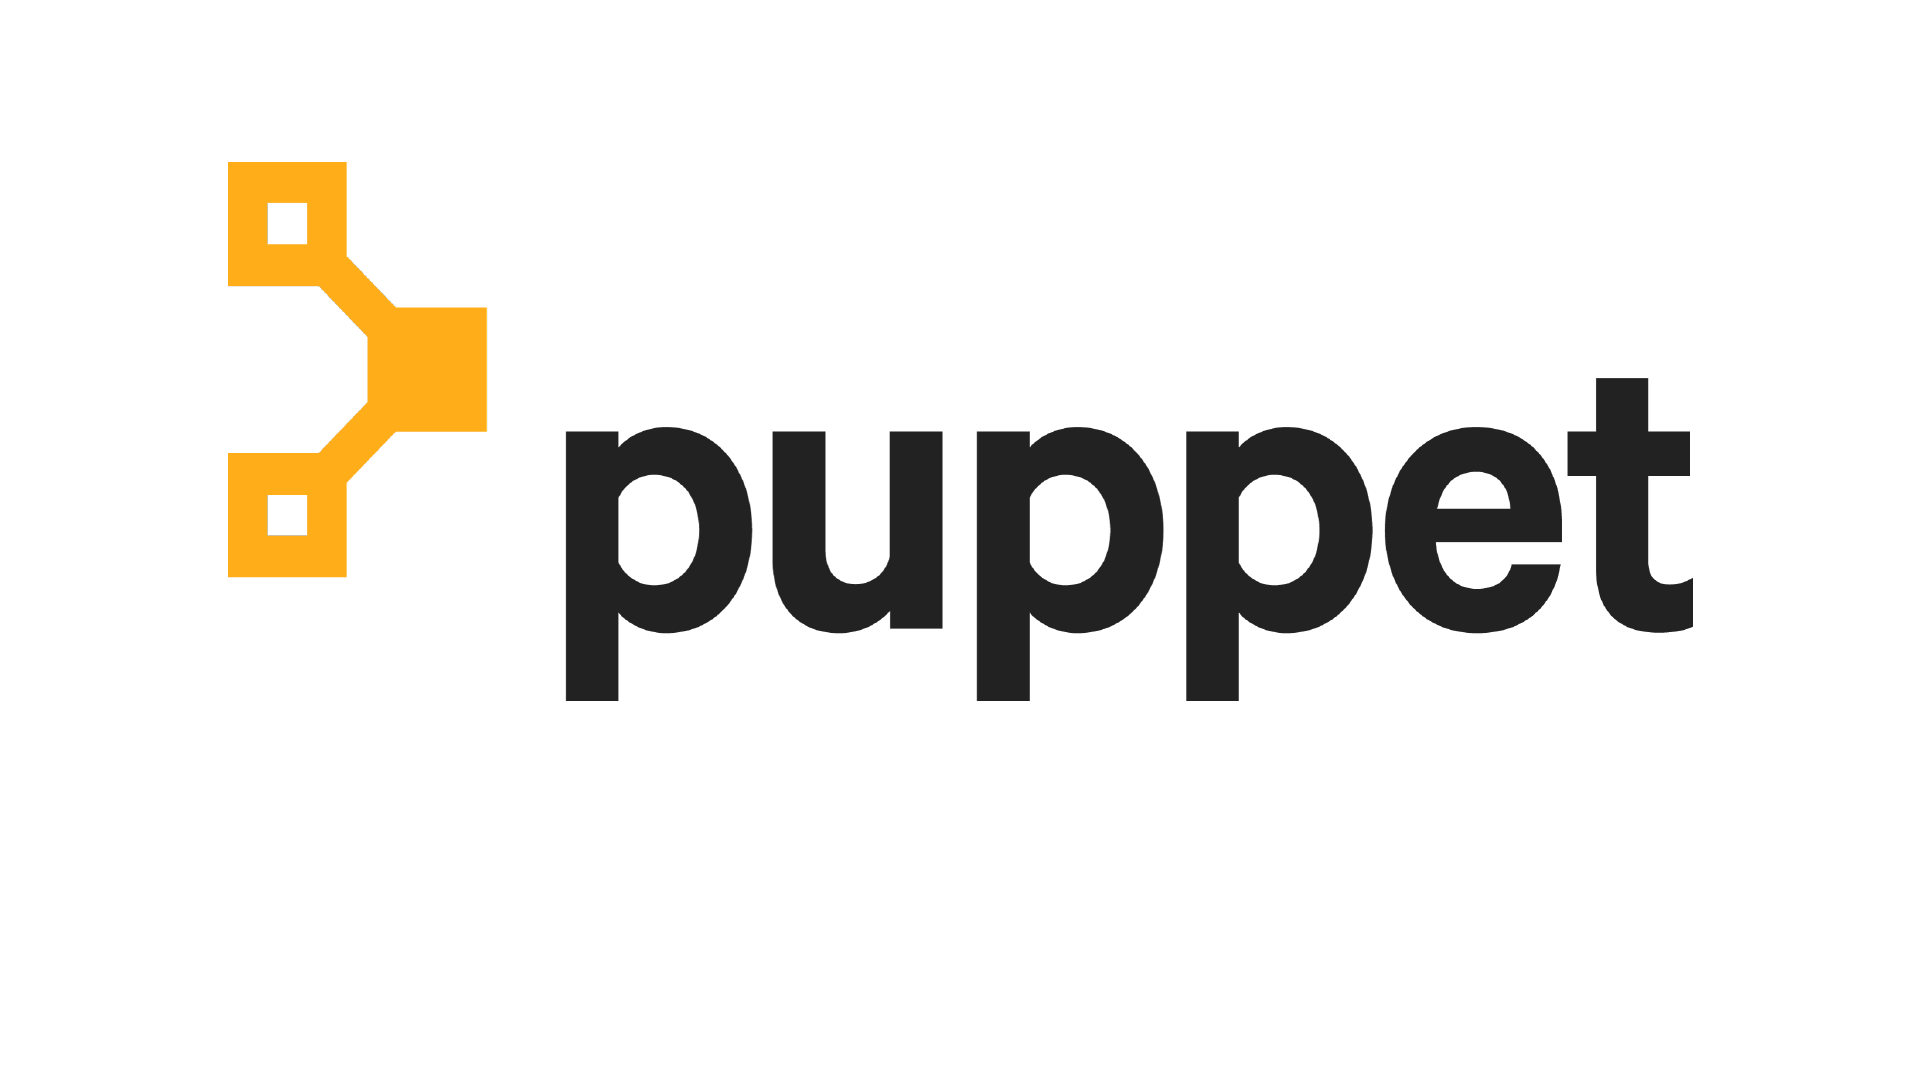 Puppet_Web.png